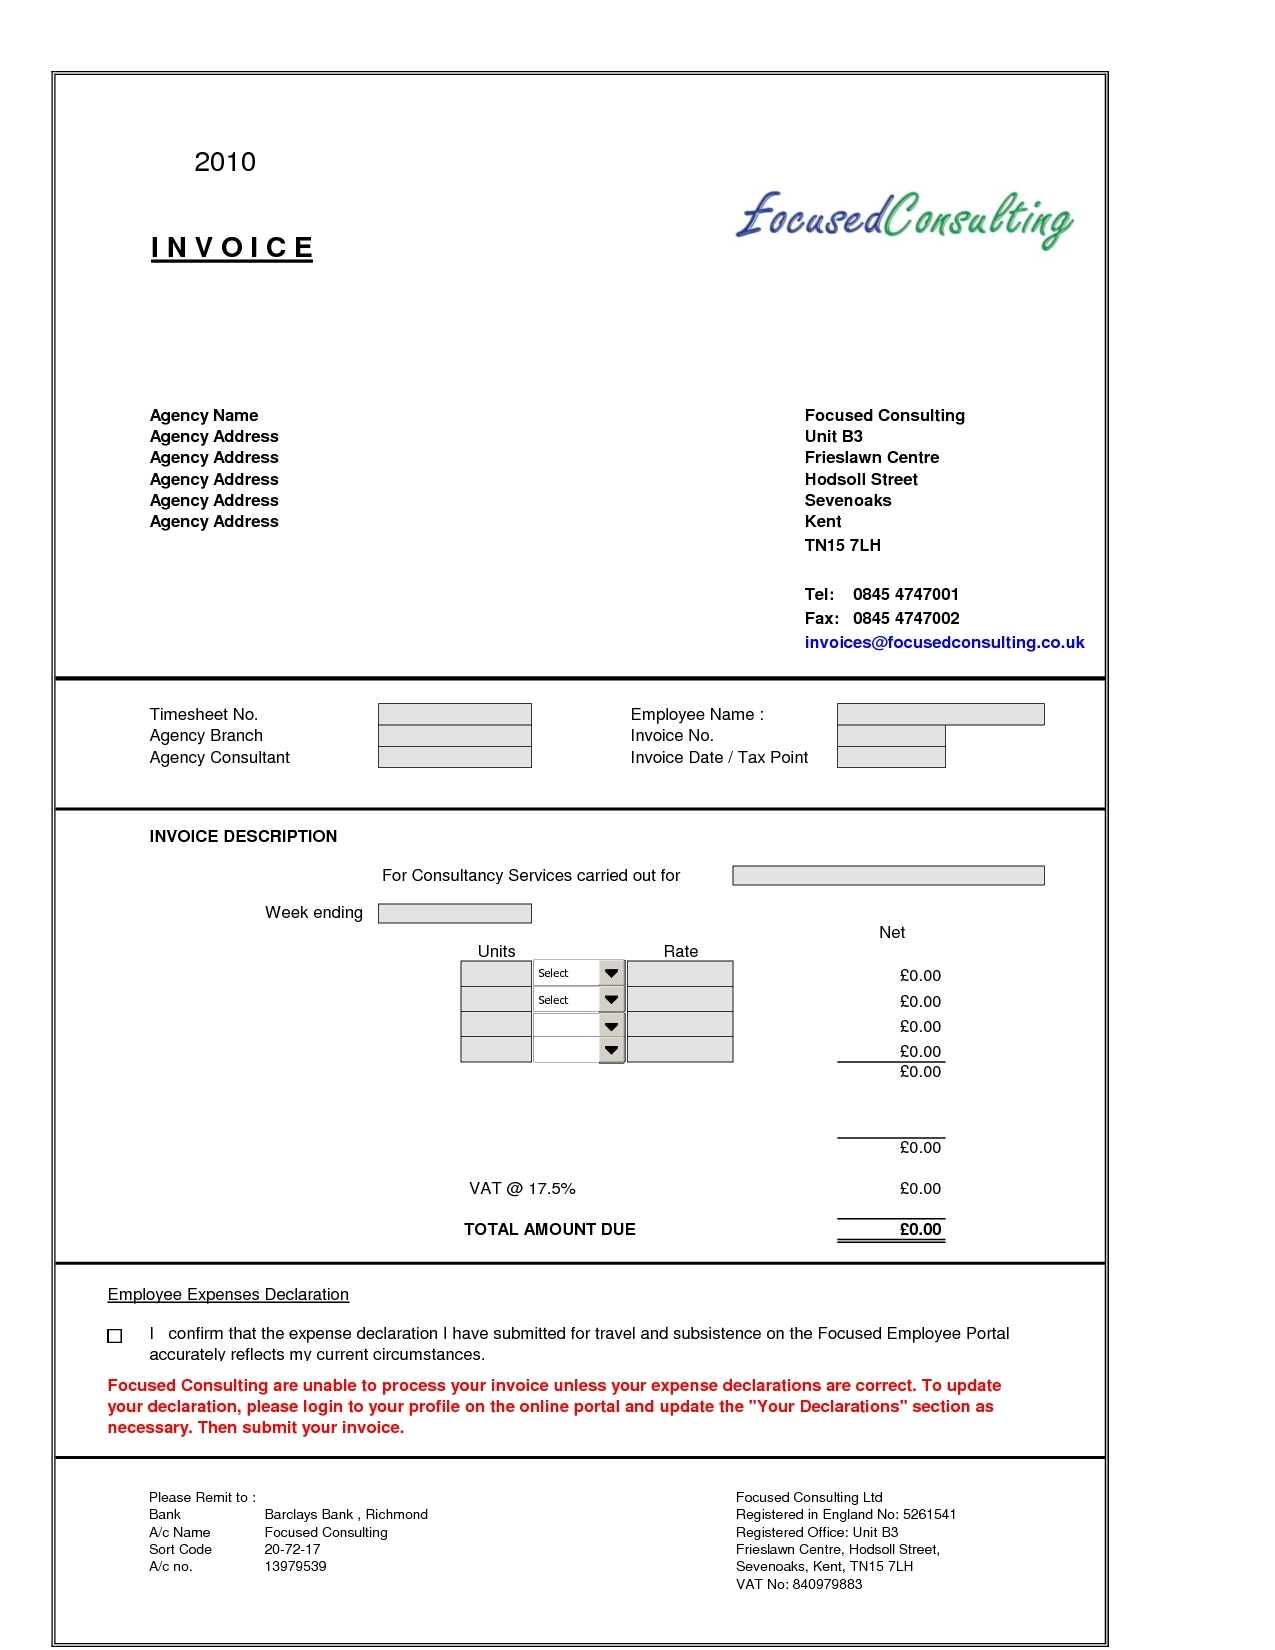 consulting services invoice invoice for consulting services invoice templat free printable 1275 X 1650